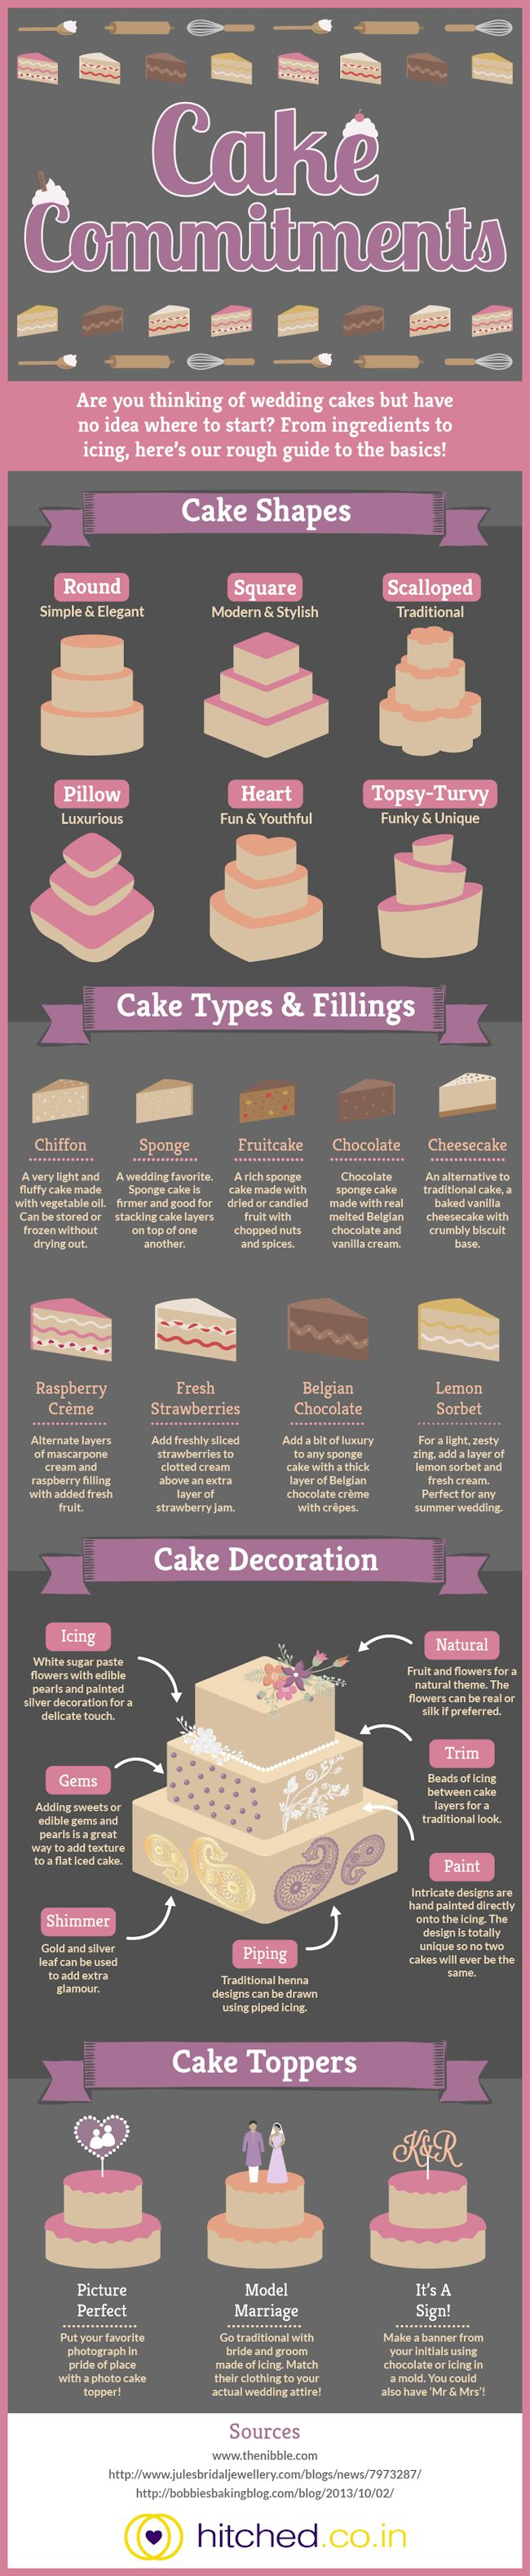 Cake Commitments - A Wedding Cake Guide